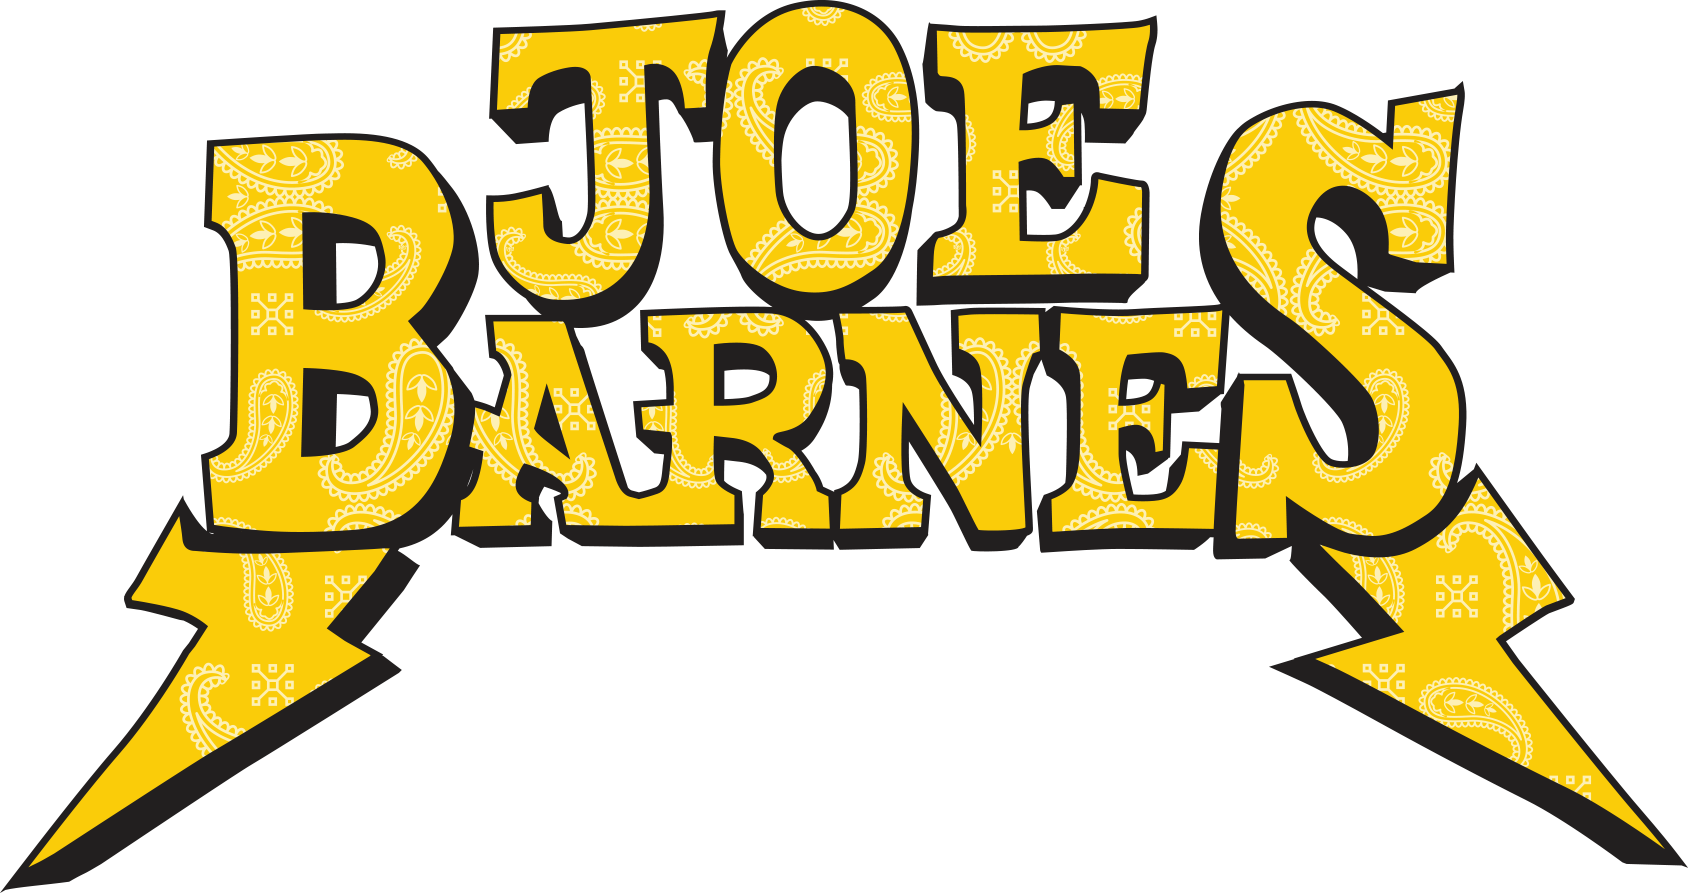 Joe Barnes' Logo